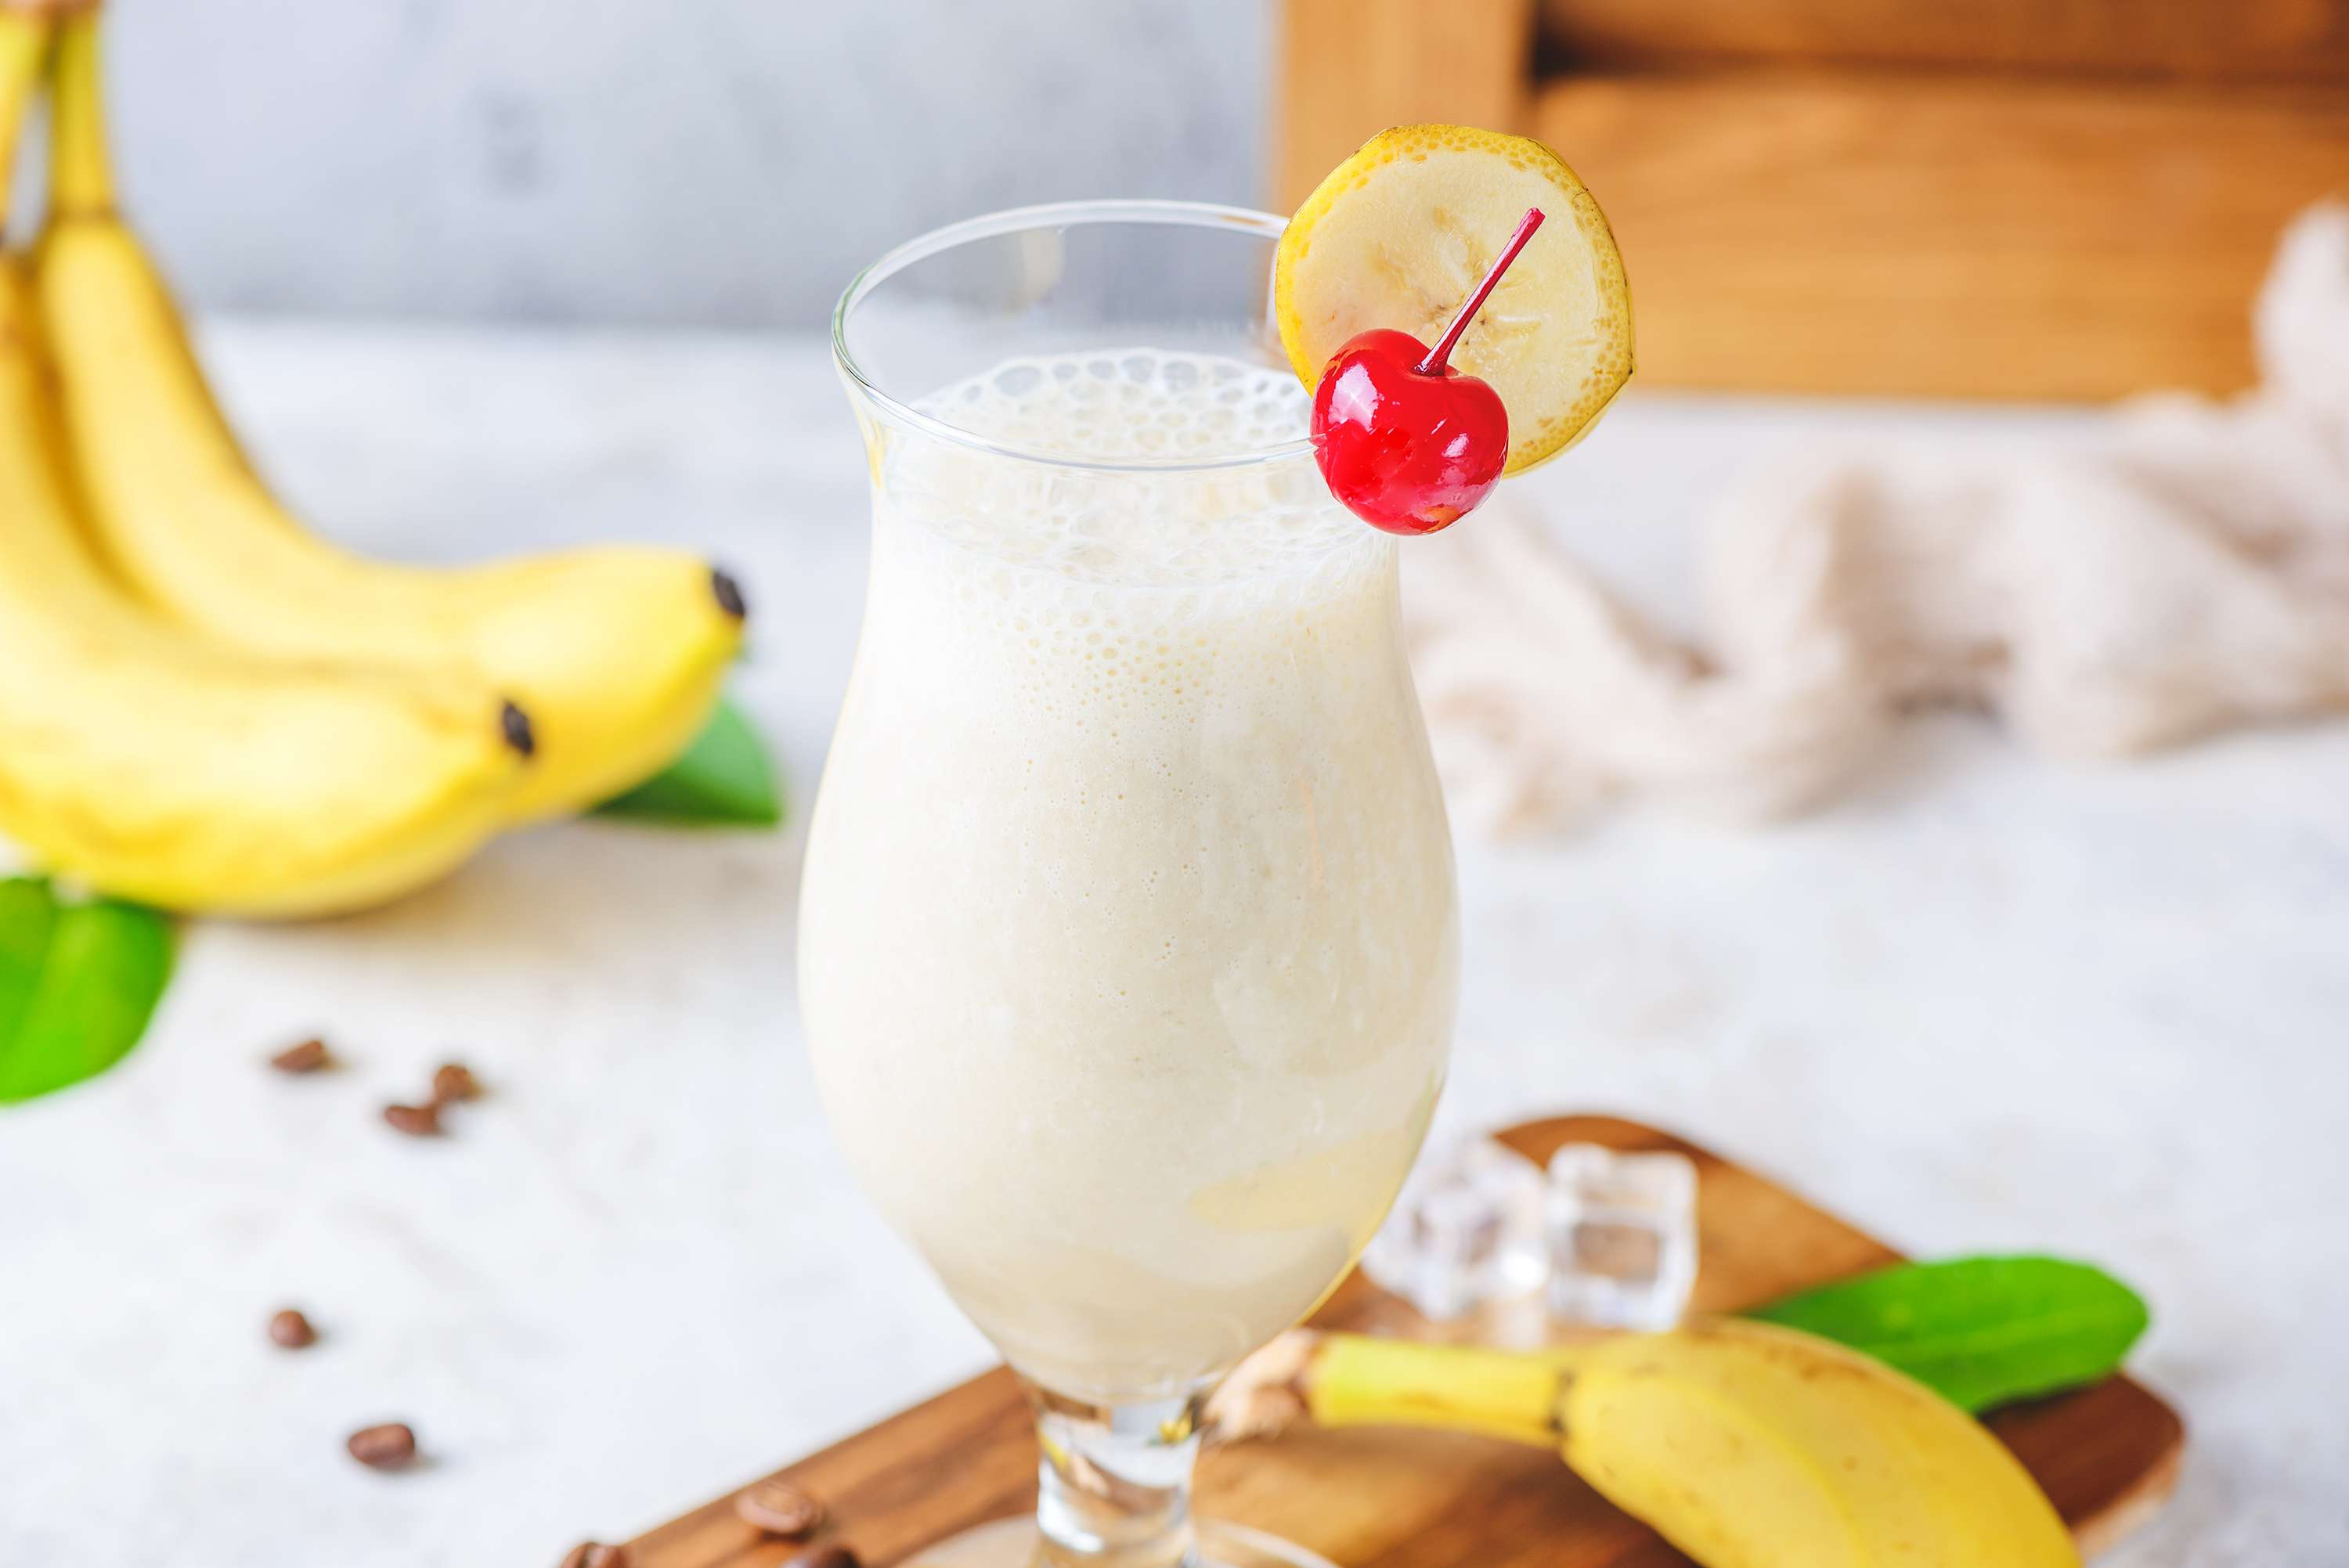 Banana wheel and cherry hanging on the rim of the glass